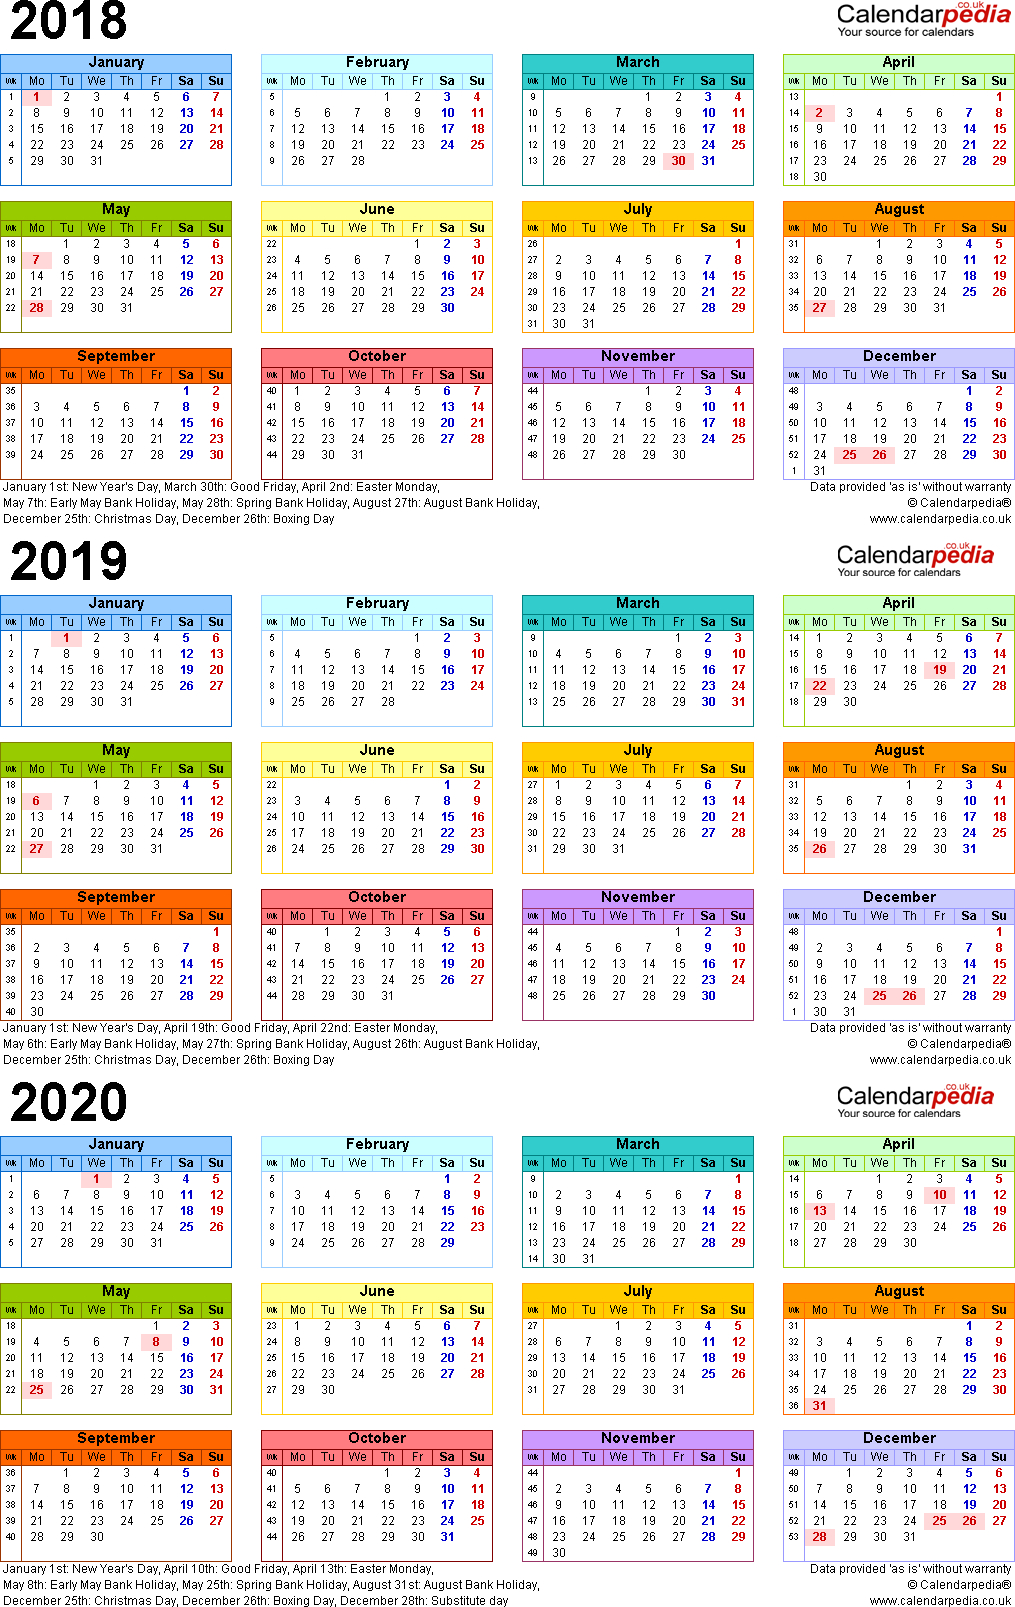 Three Year Calendars For 2018, 2019 & 2020 (Uk) For Pdf for 3 Year Calendar Printable 2018 2019 2020